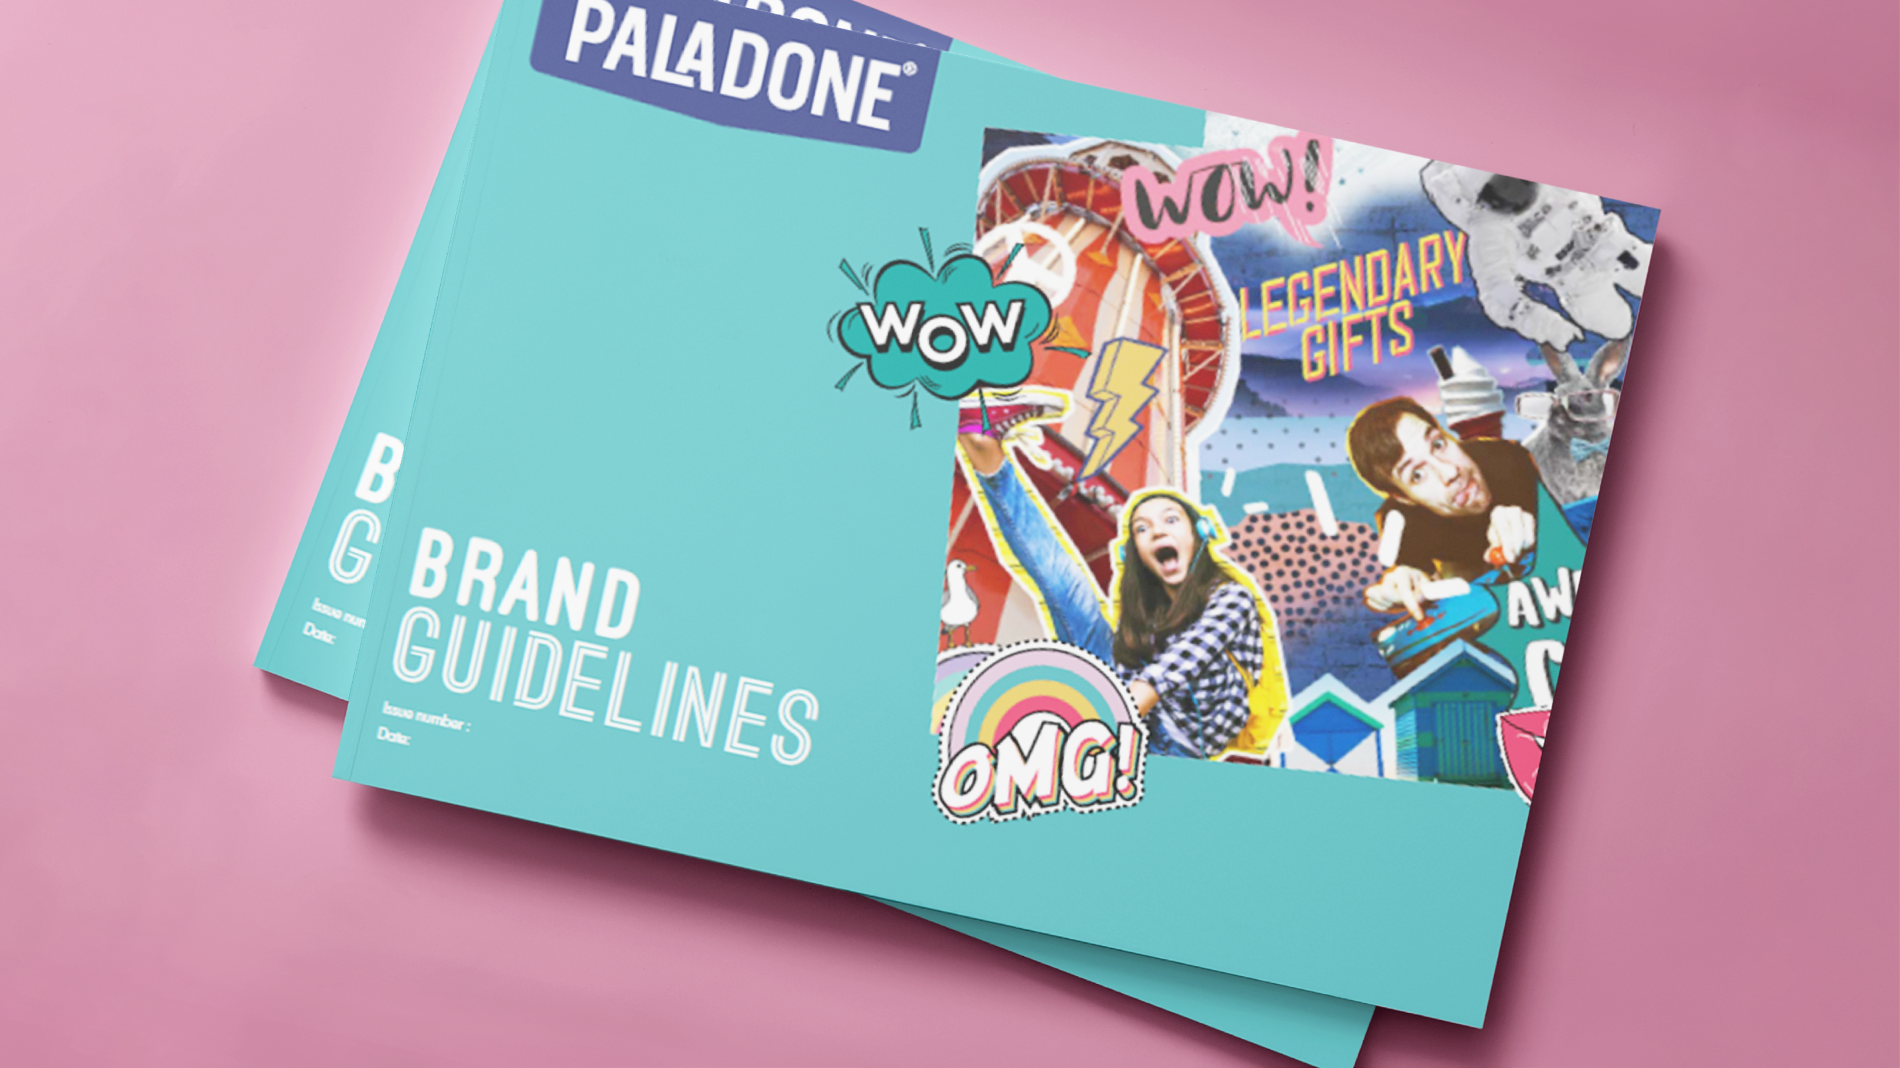 Paladone brand guidelines cover